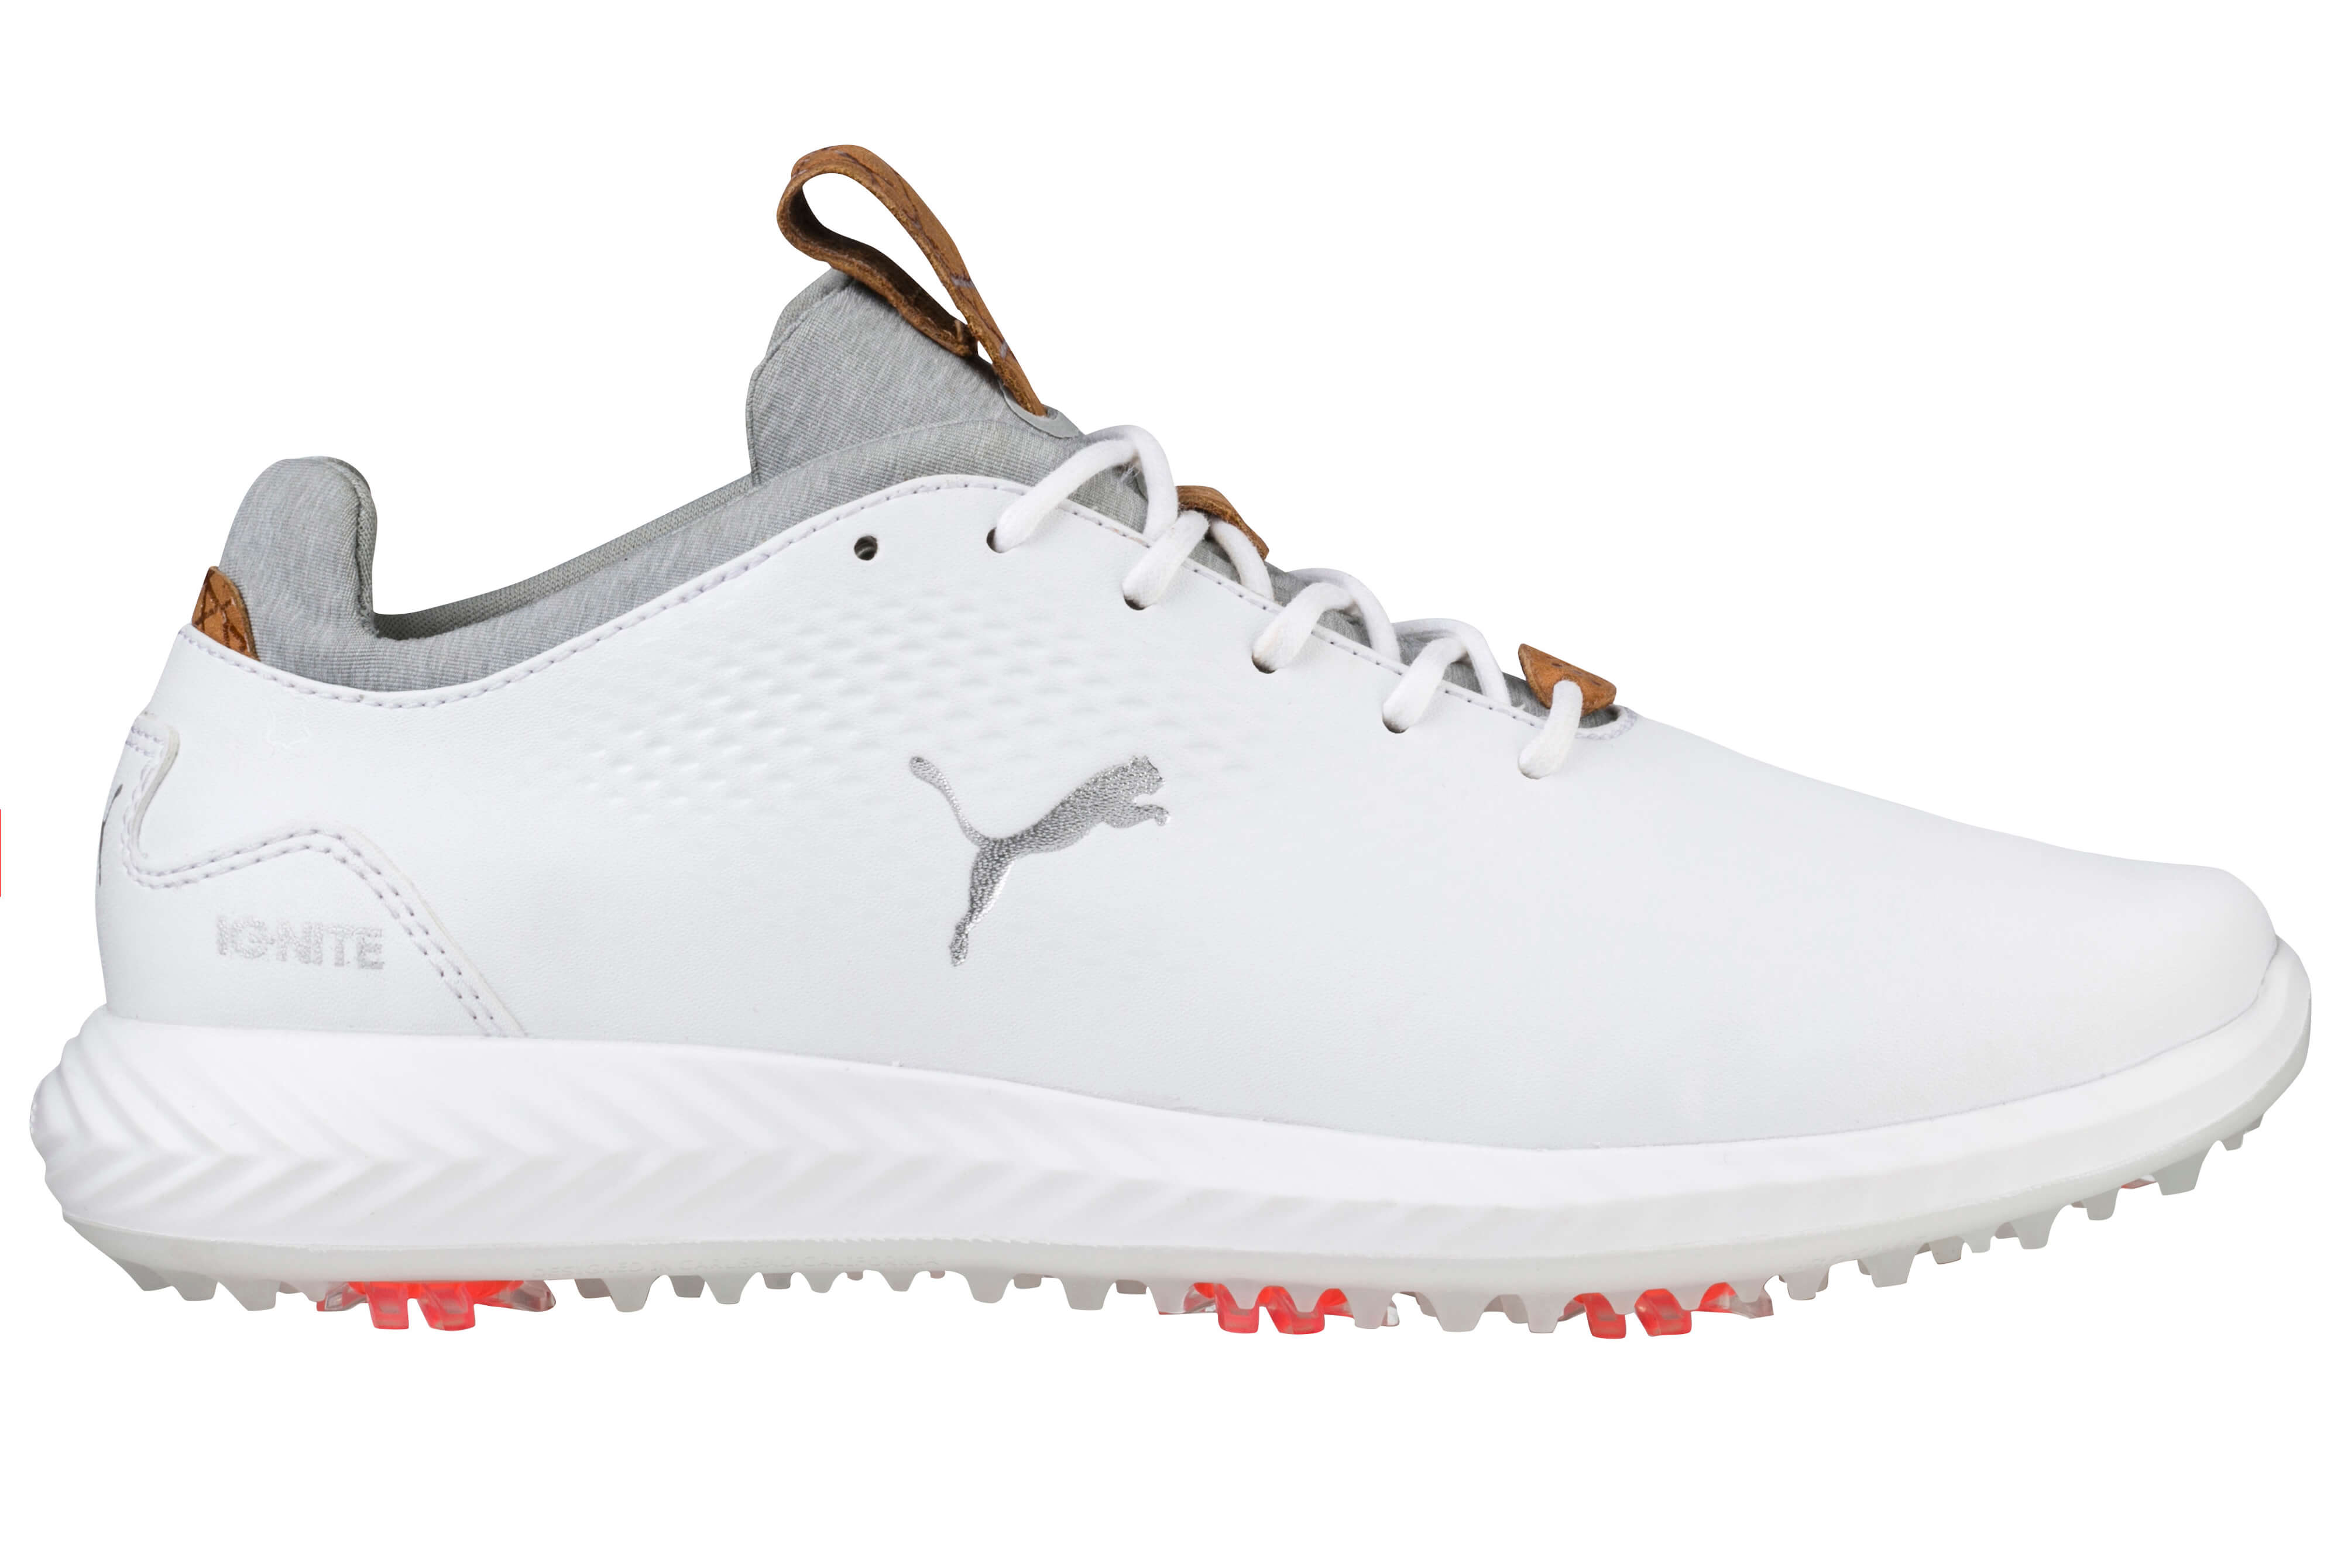 Details about Puma Ignite Pwradapt Junior Golf Shoes 190584 01 WhiteWhite New